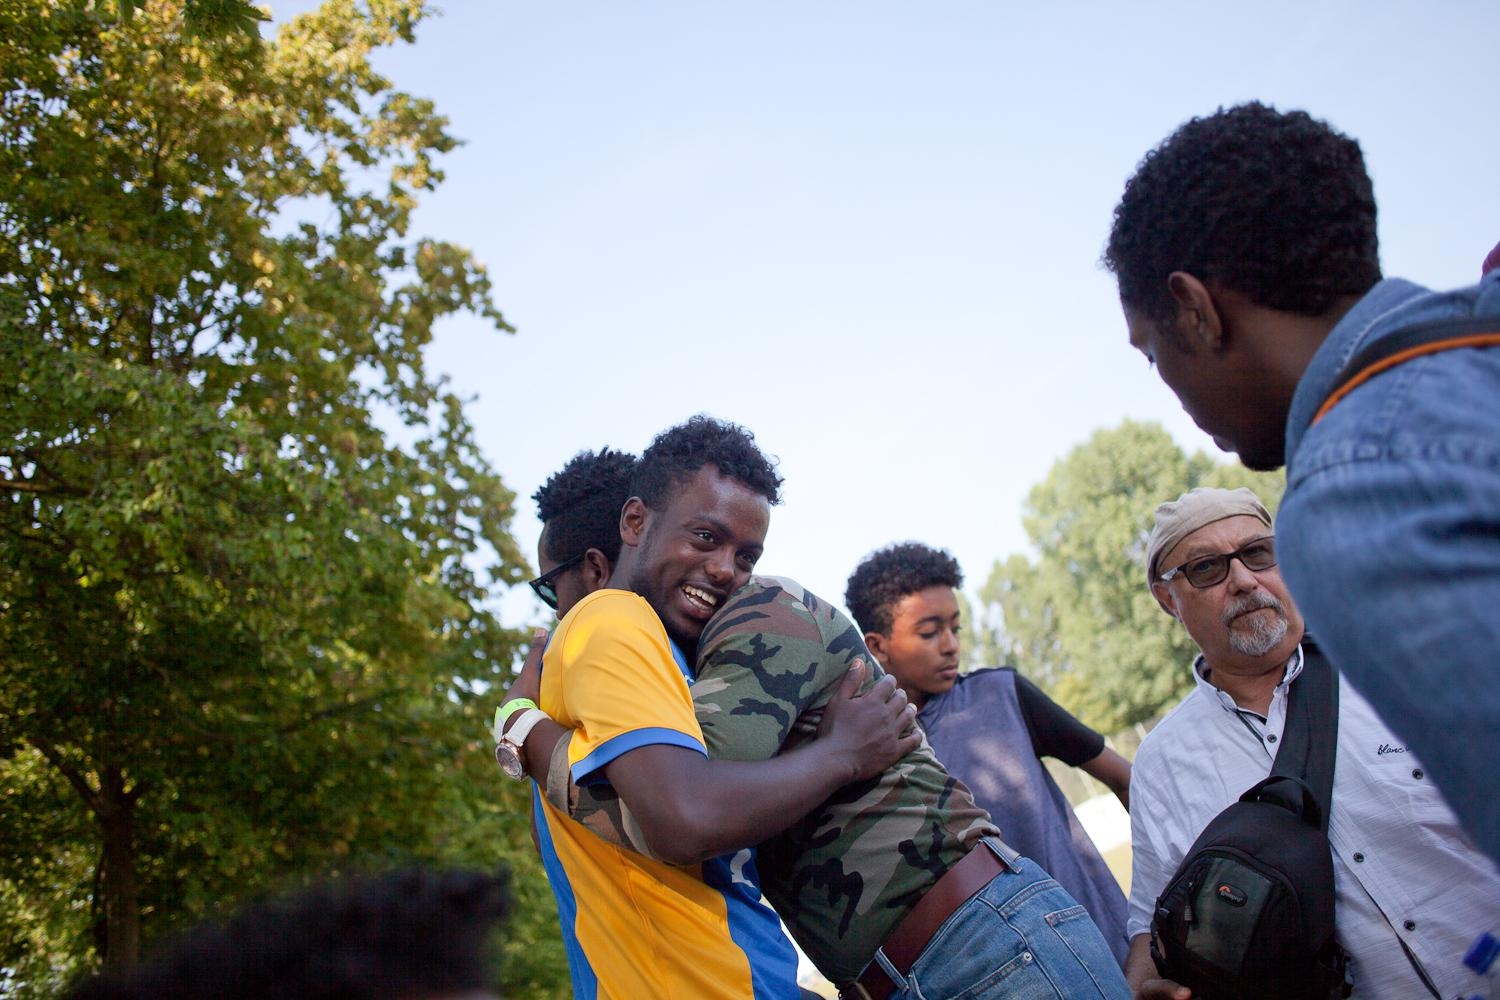 Mikiyas runs into a neighbour from the village in Eritrea that he grew up in. Much more than a mere sporting event, the annual football cup serves to consolidate the feeling of community among the Habesha diaspora in Europe.